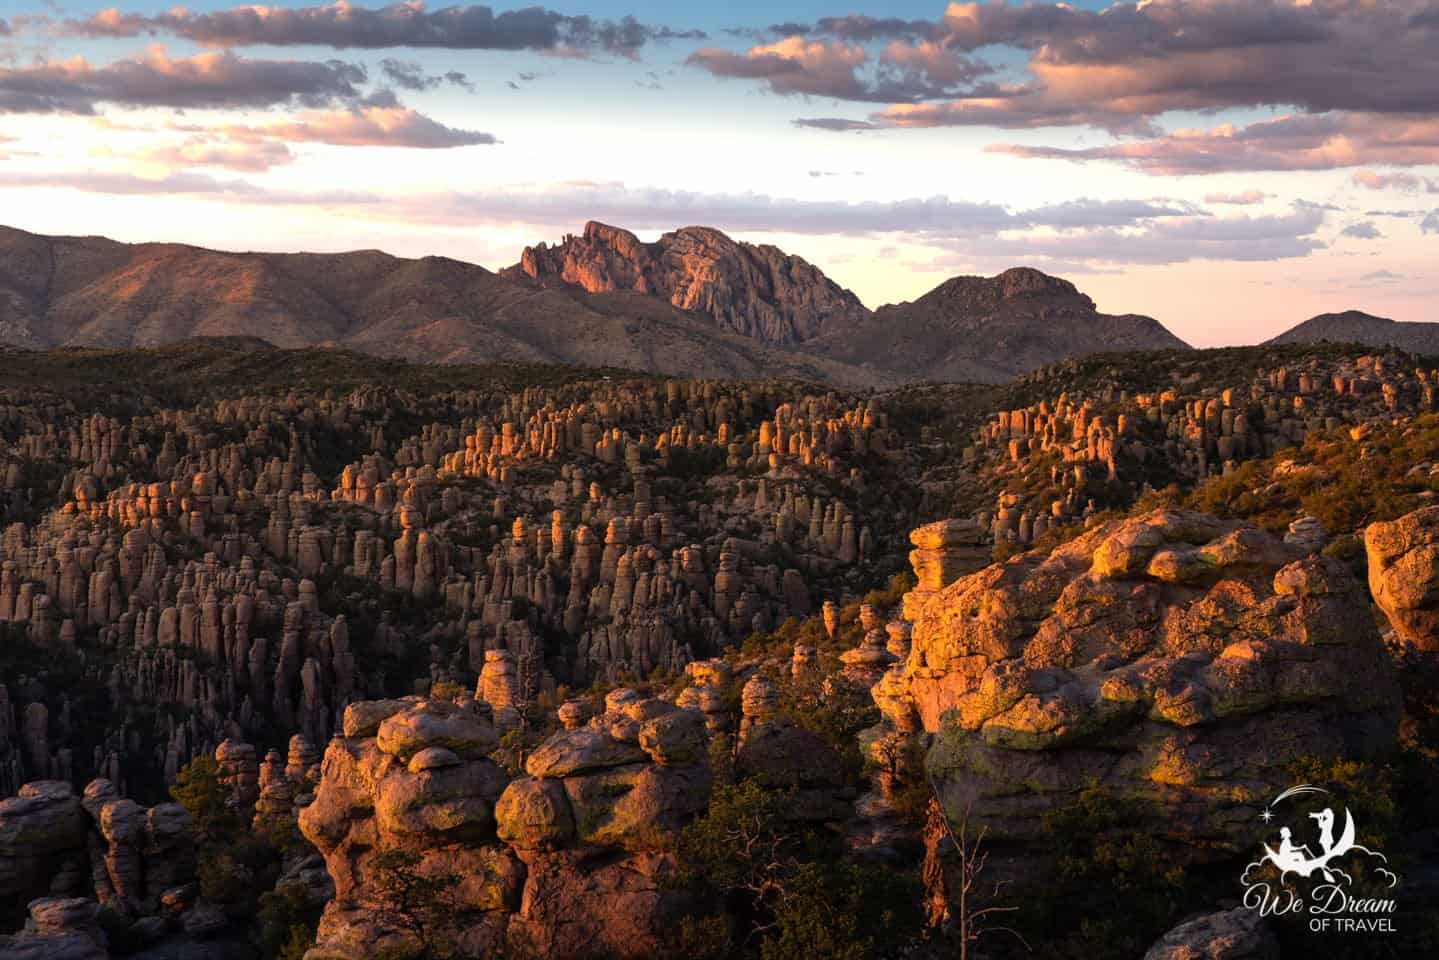 The late glow of sunset kisses the rocks of Chiricahua National Monument.